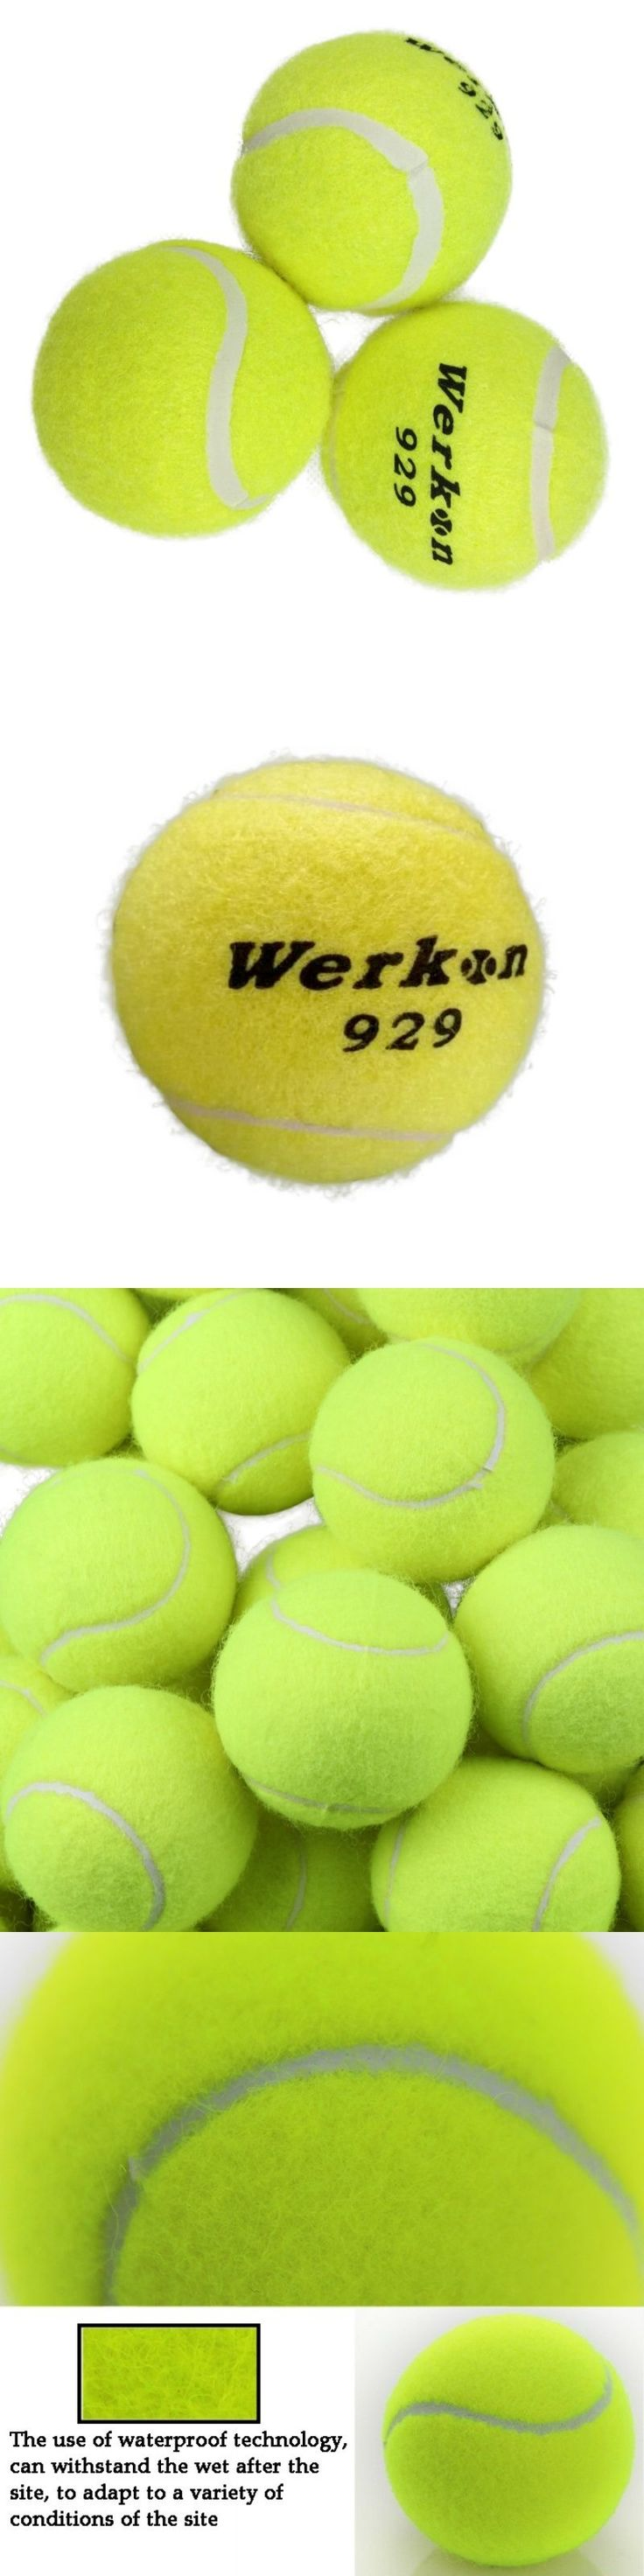 High Quality 3pcs/set Tennis Training Ball for Training Beginner Tennis Trainer #tennisforbeginners